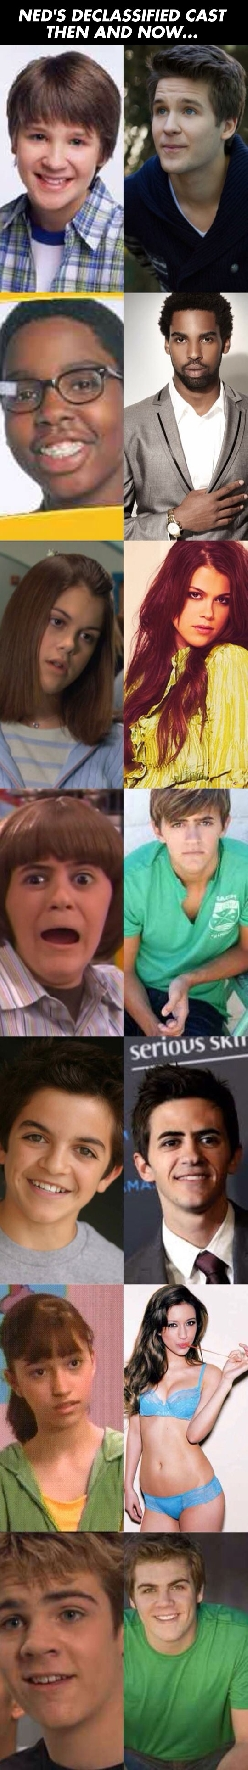 Ned's Declassified Cast Then And Now